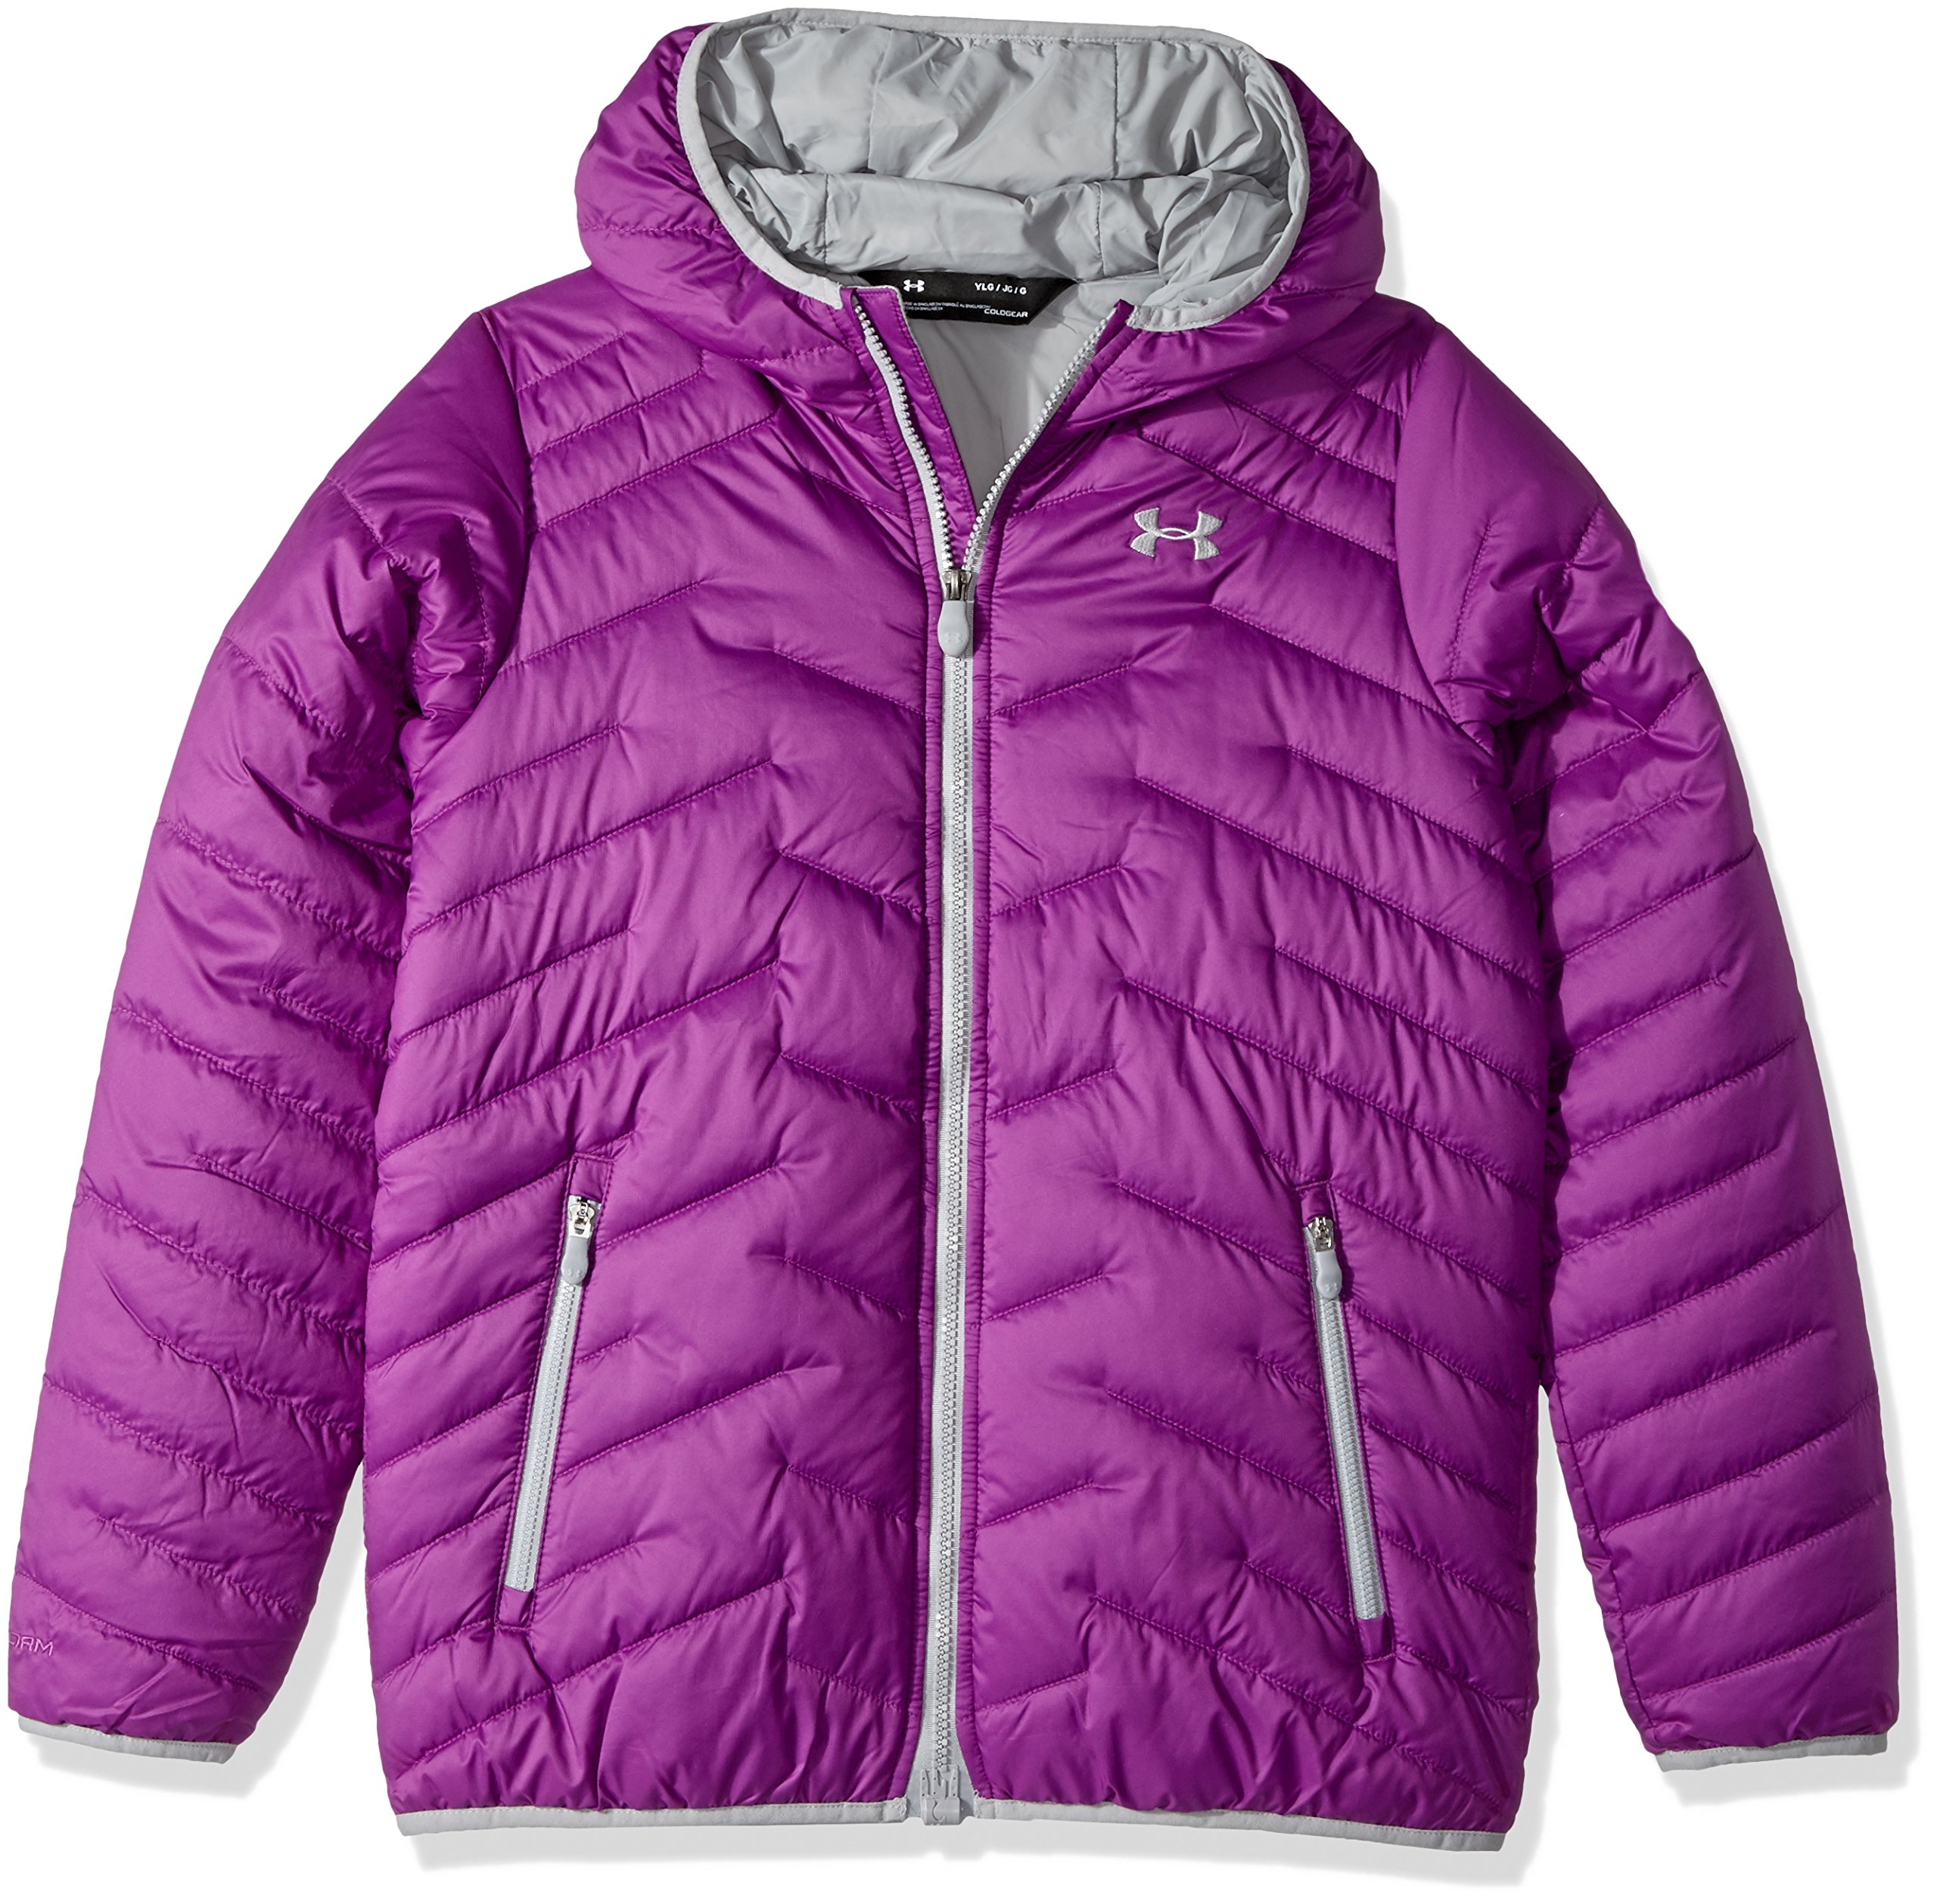 Under Armour Girls' ColdGear Reactor Hooded Jacket, Purple Rave/Overcast Gray, Youth Small by Under Armour